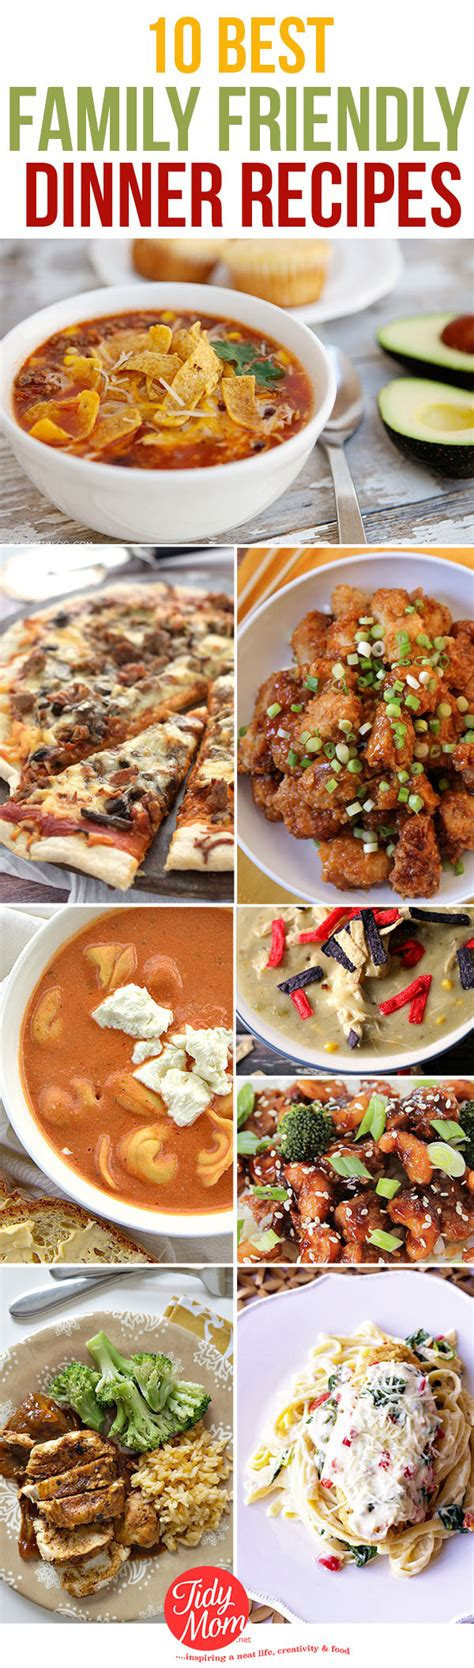 dinner recipe ideas busy family dinner www pixshark com images galleries with a bite